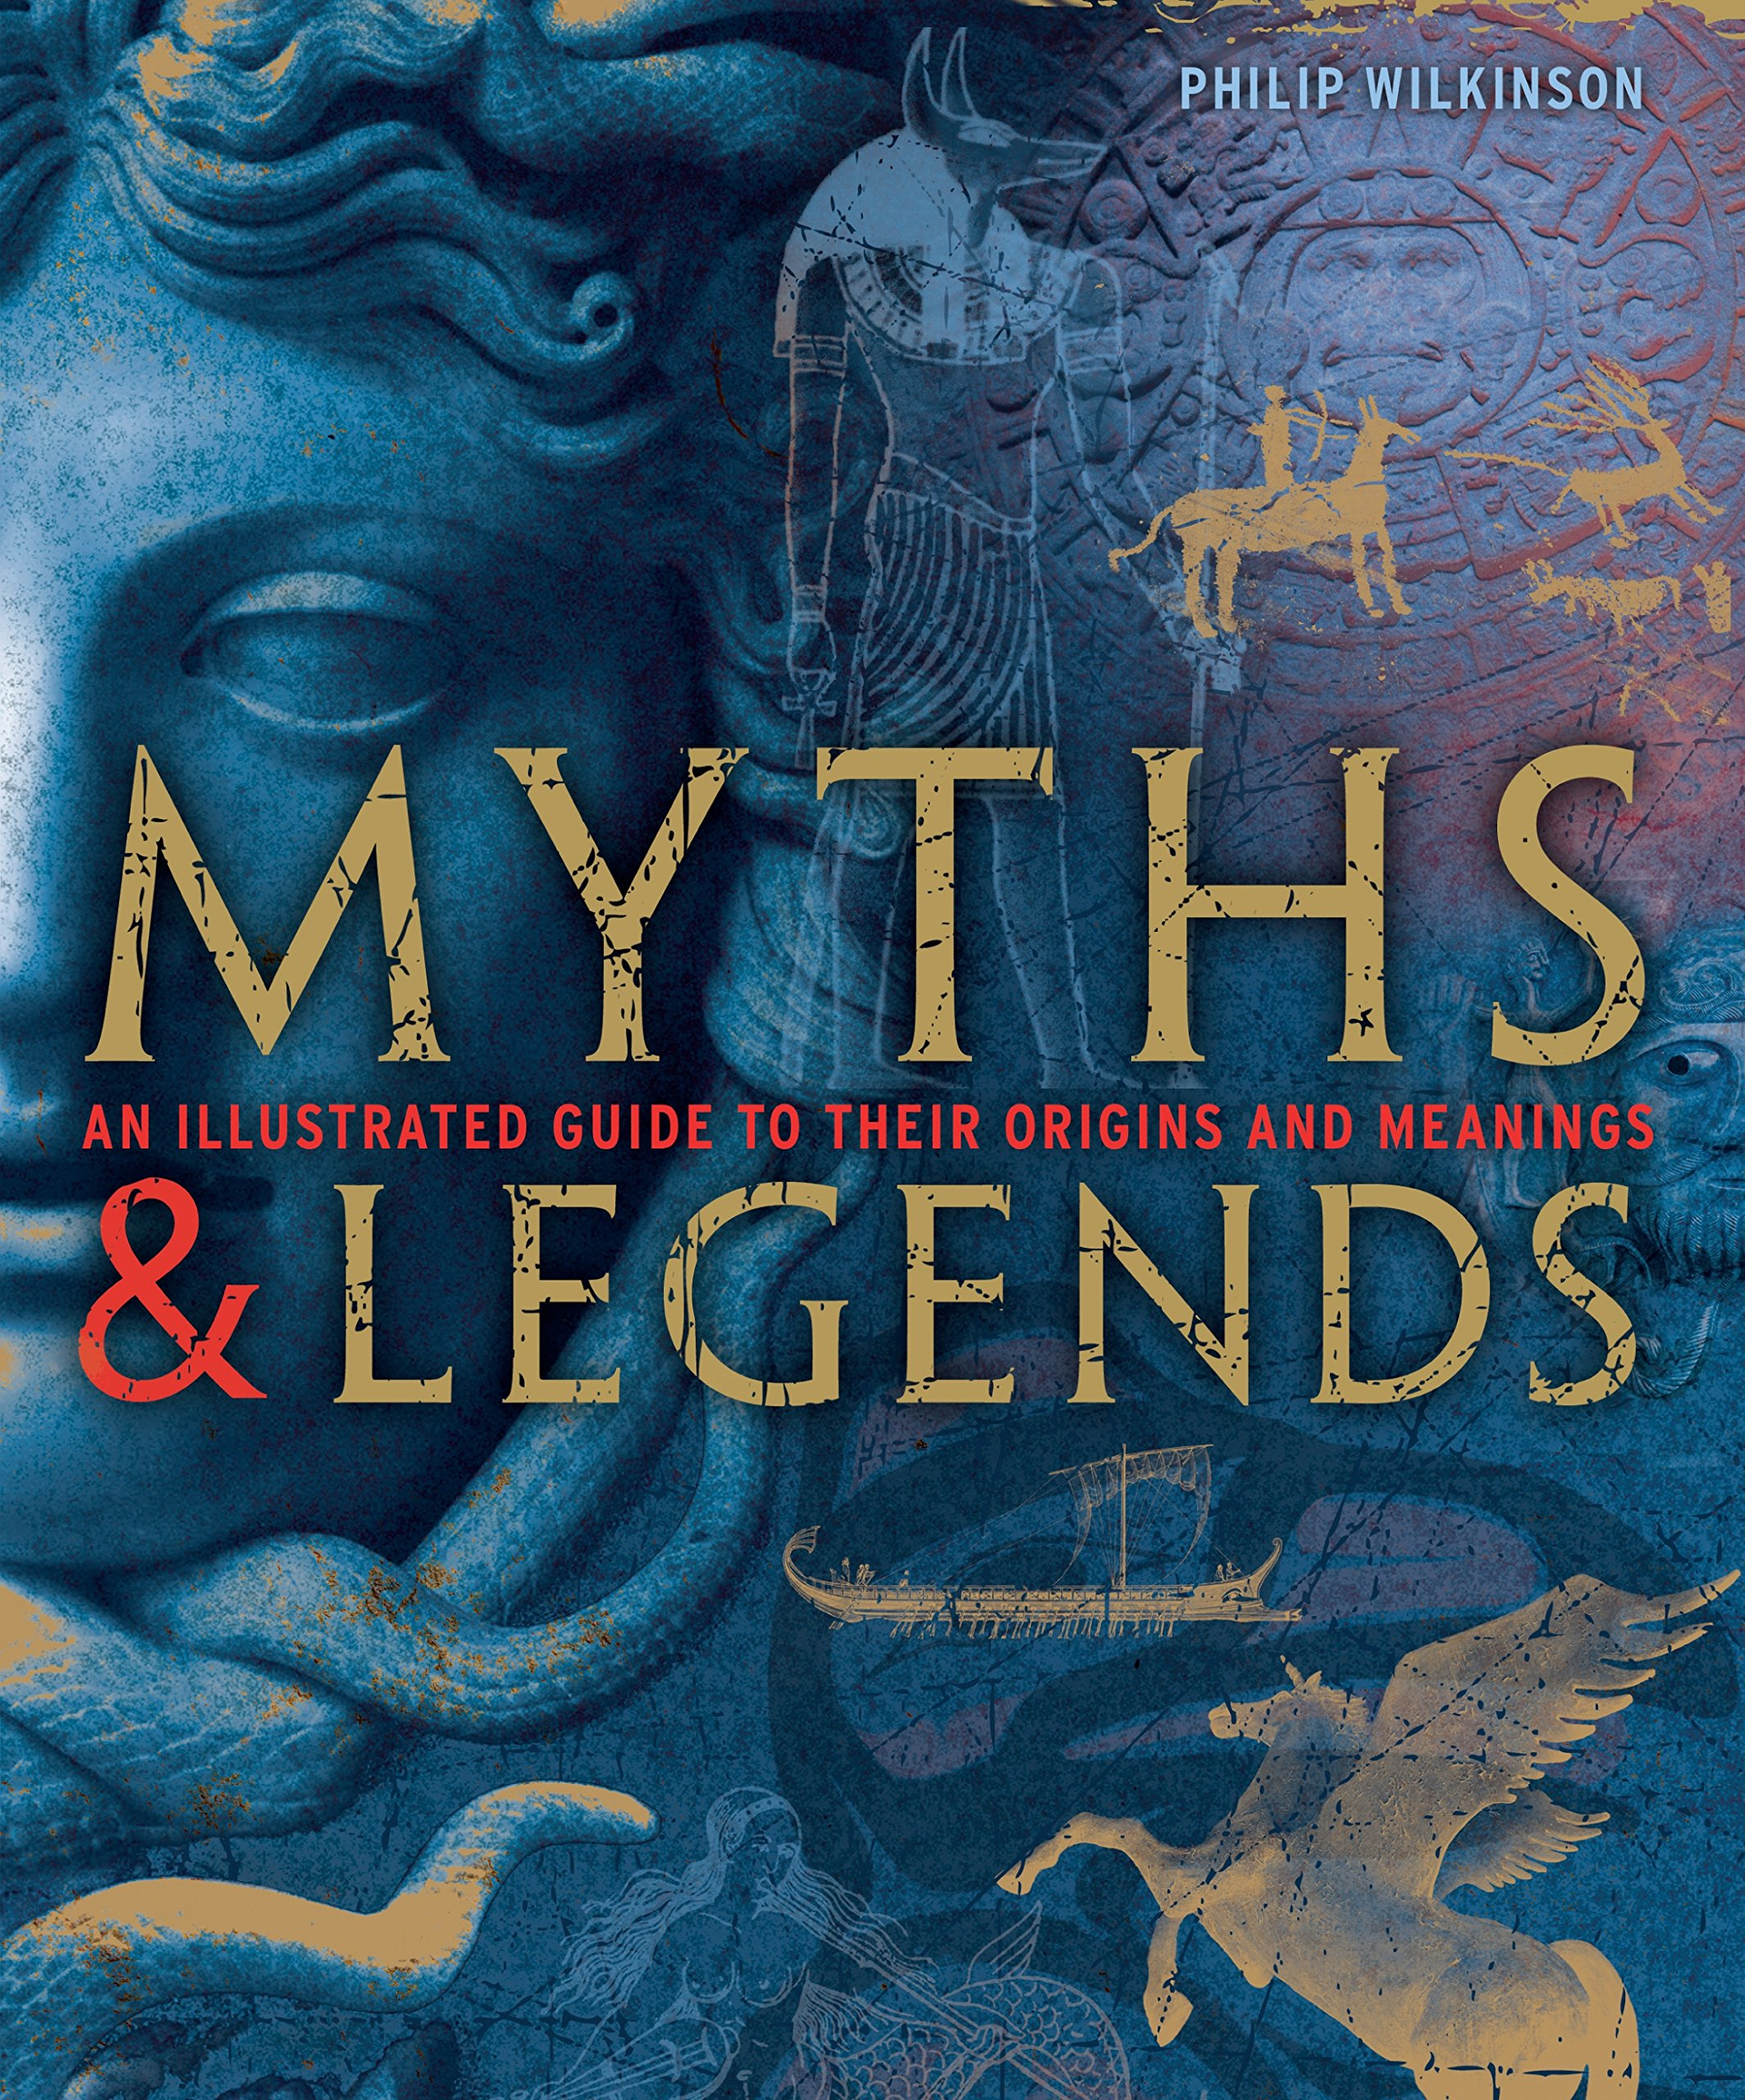 myths and legends amazon co uk philip wilkinson  myths and legends amazon co uk philip wilkinson 9781405335522 books